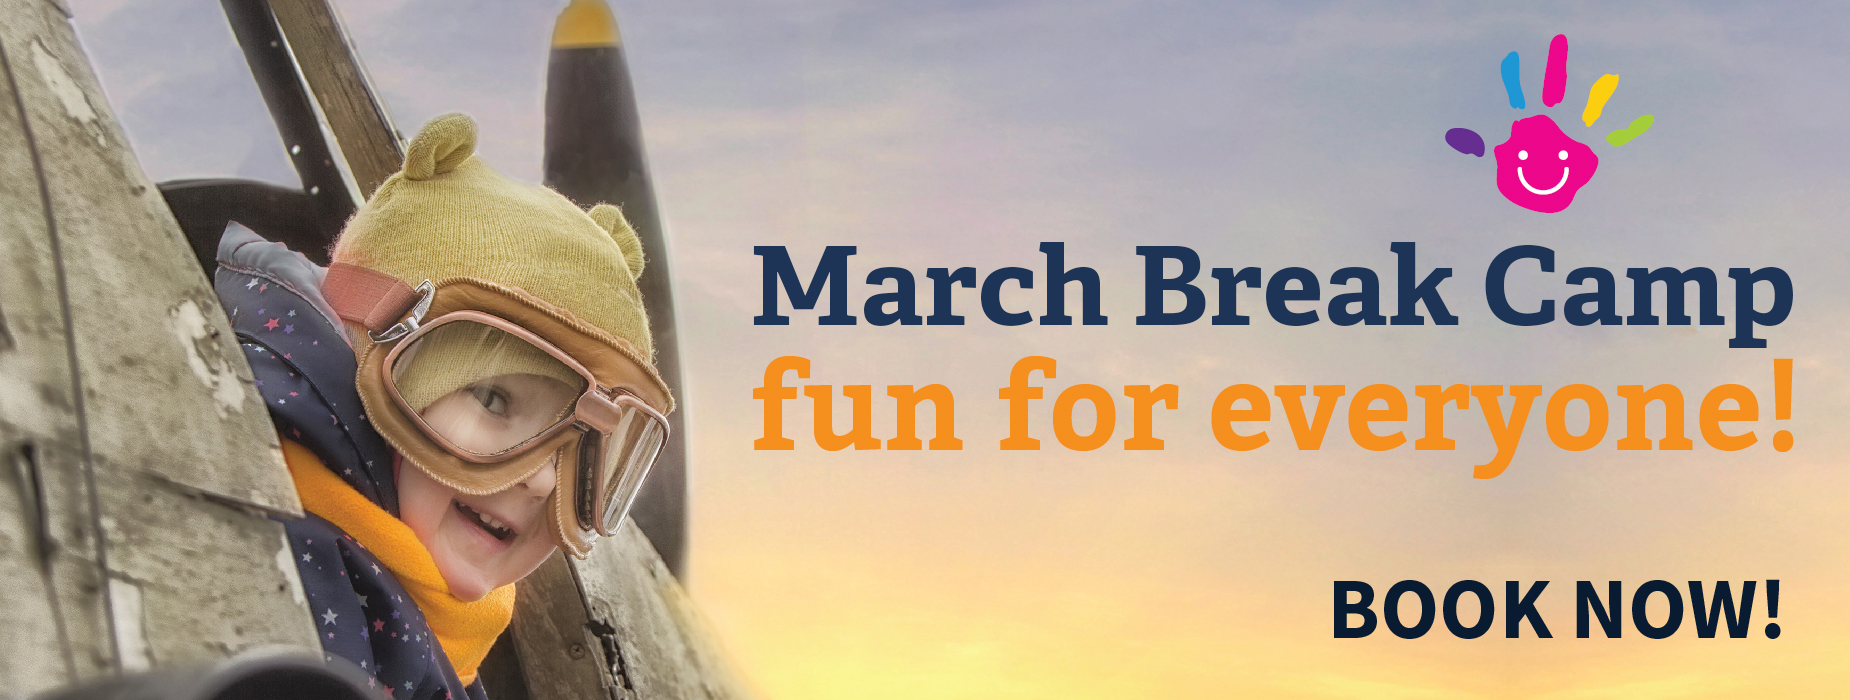 Poster for - March Break Camp